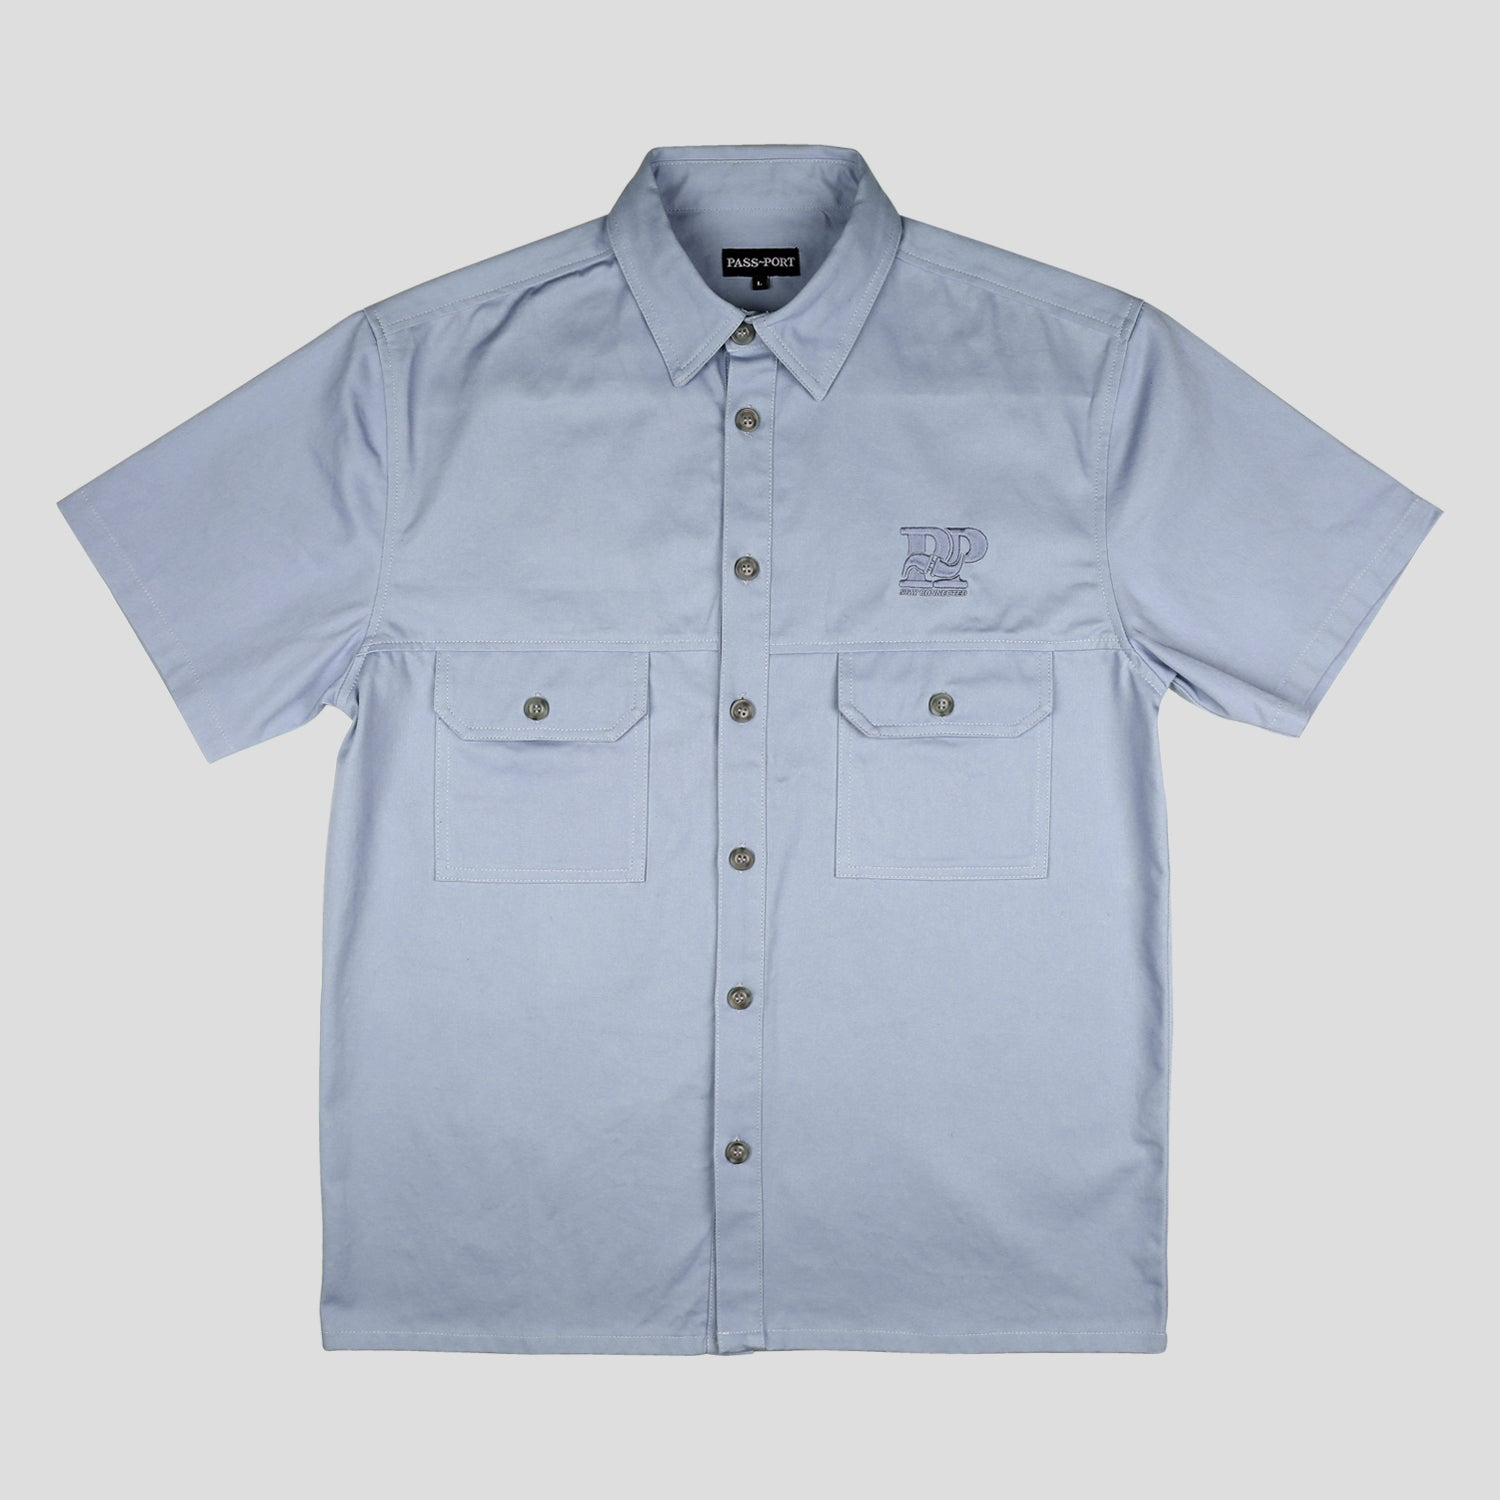 "PASS~PORT ""STAY CONNECTED"" SPARKY S/S SHIRT SLATE"